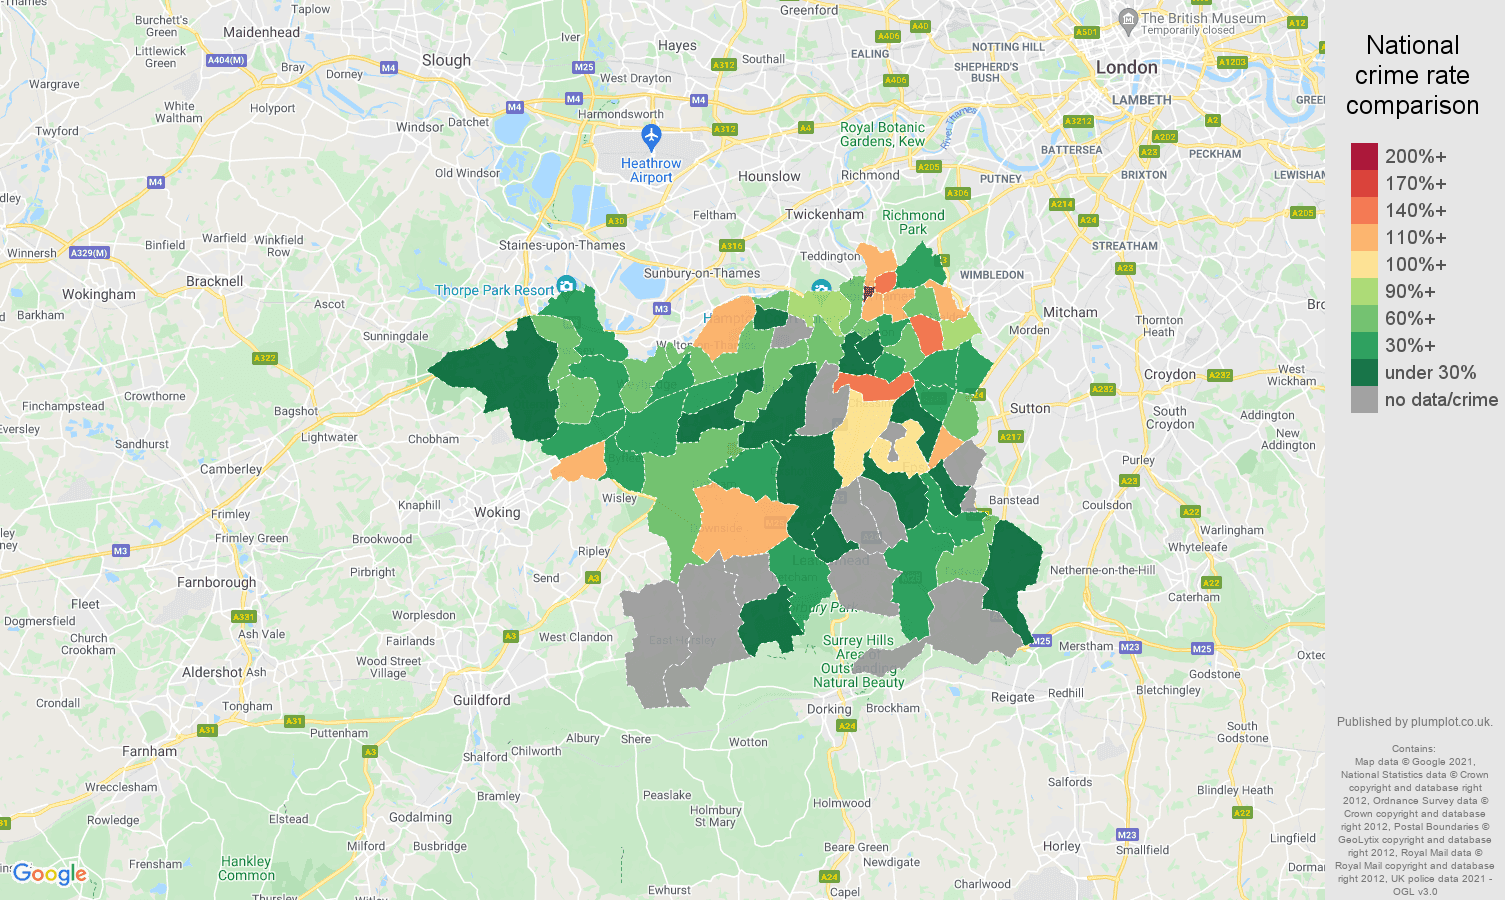 Kingston upon Thames robbery crime rate comparison map